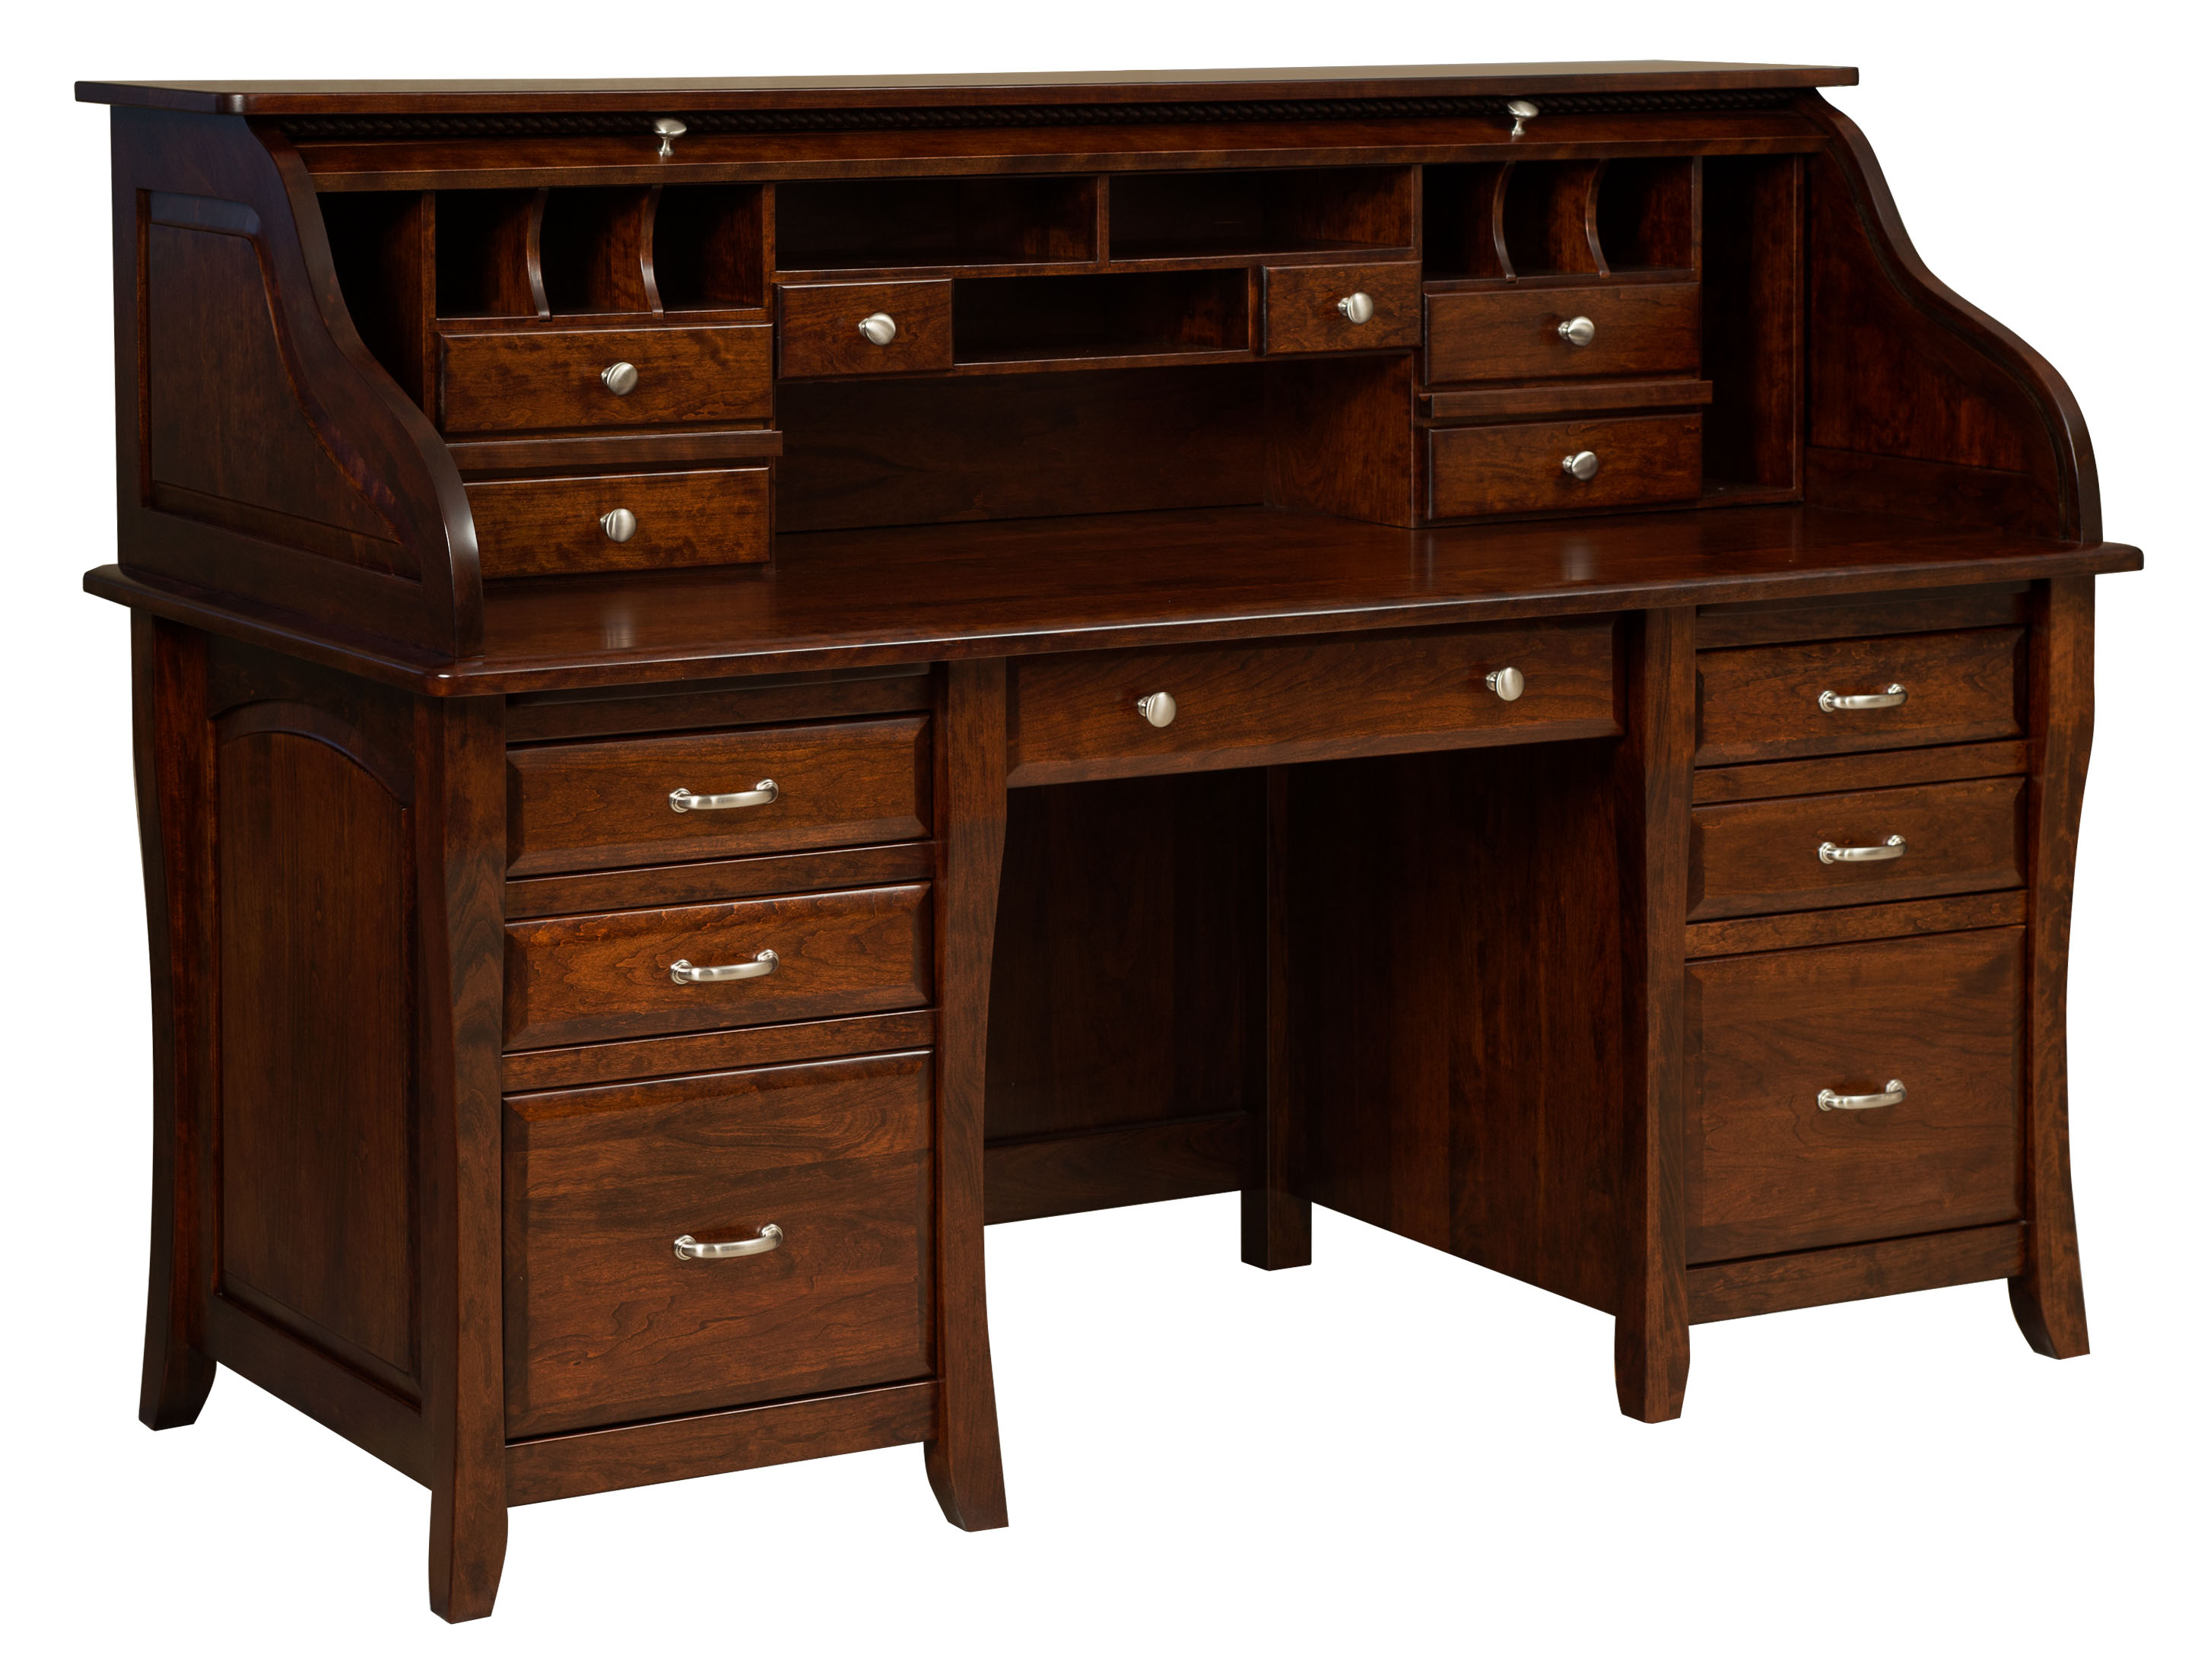 Berkley Double Pedestal Rolltop Desk Amish Direct Furniture